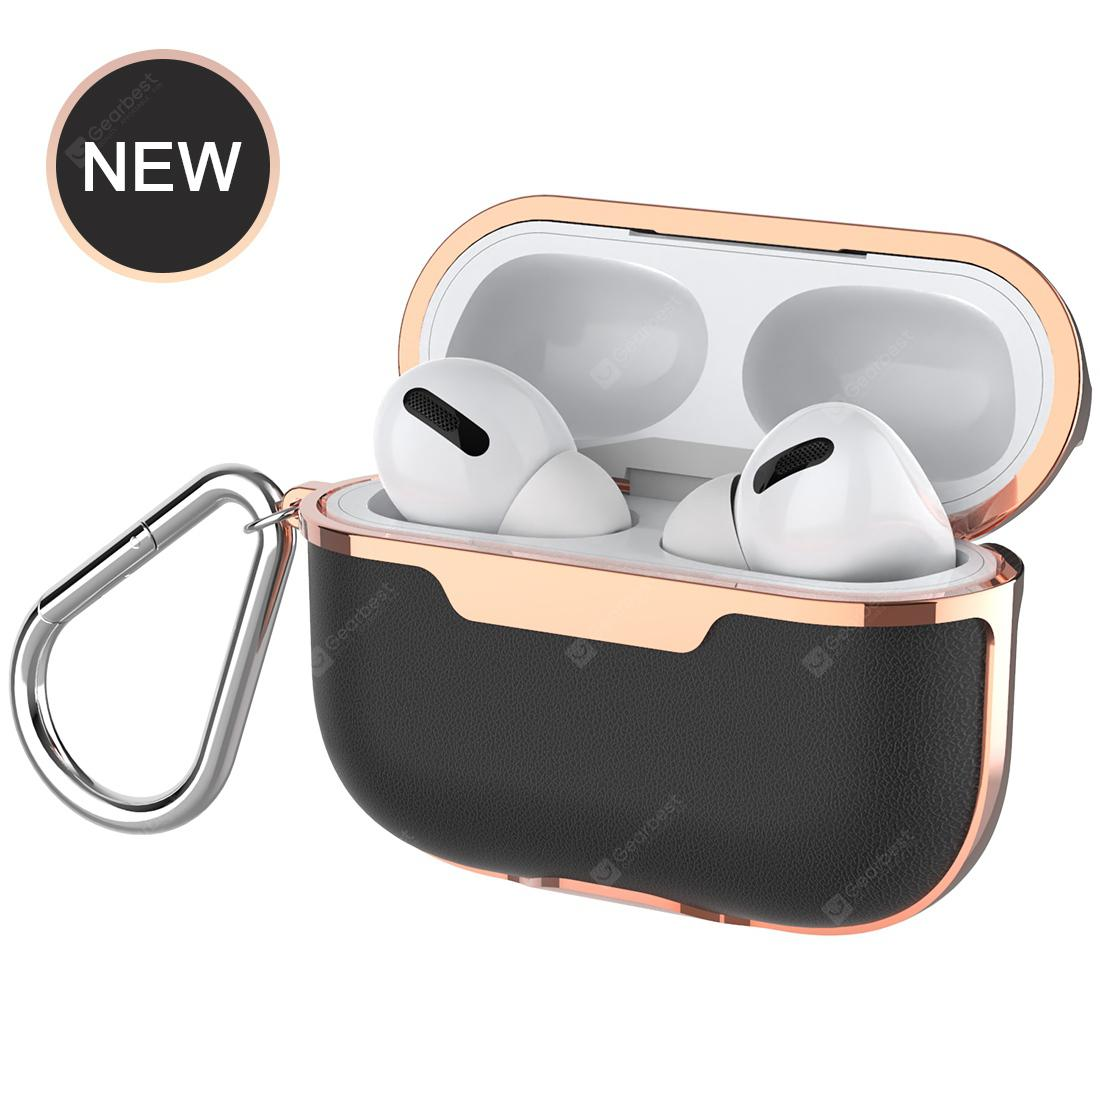 Replacement Wireless Cover for AirPods Pro 2 Case Imitation Leather Headset Cover